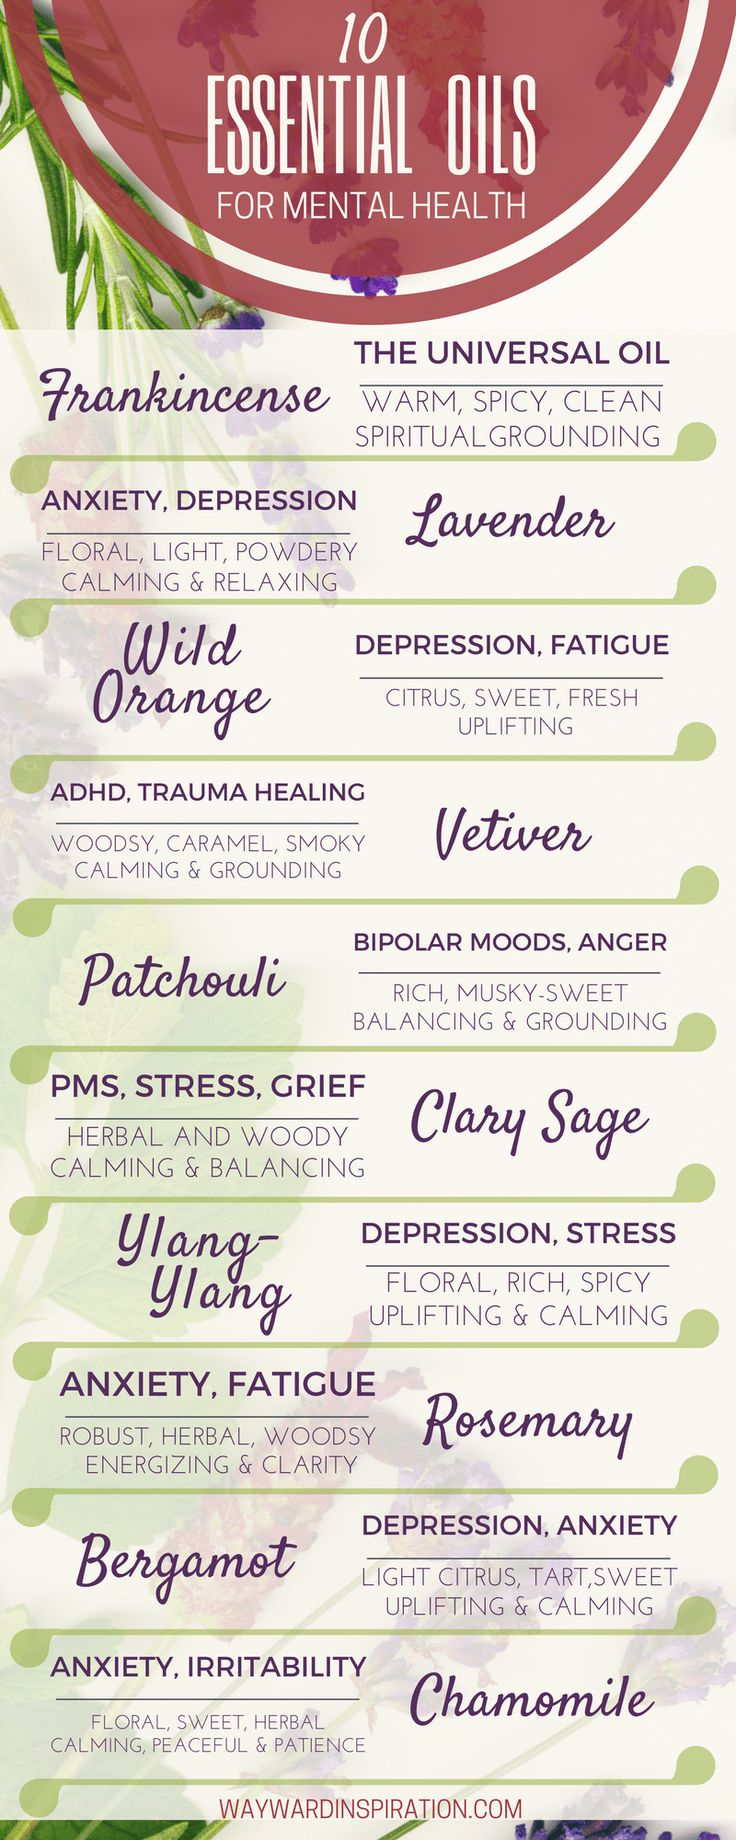 10 Essential Oils for Mental Health #infographic